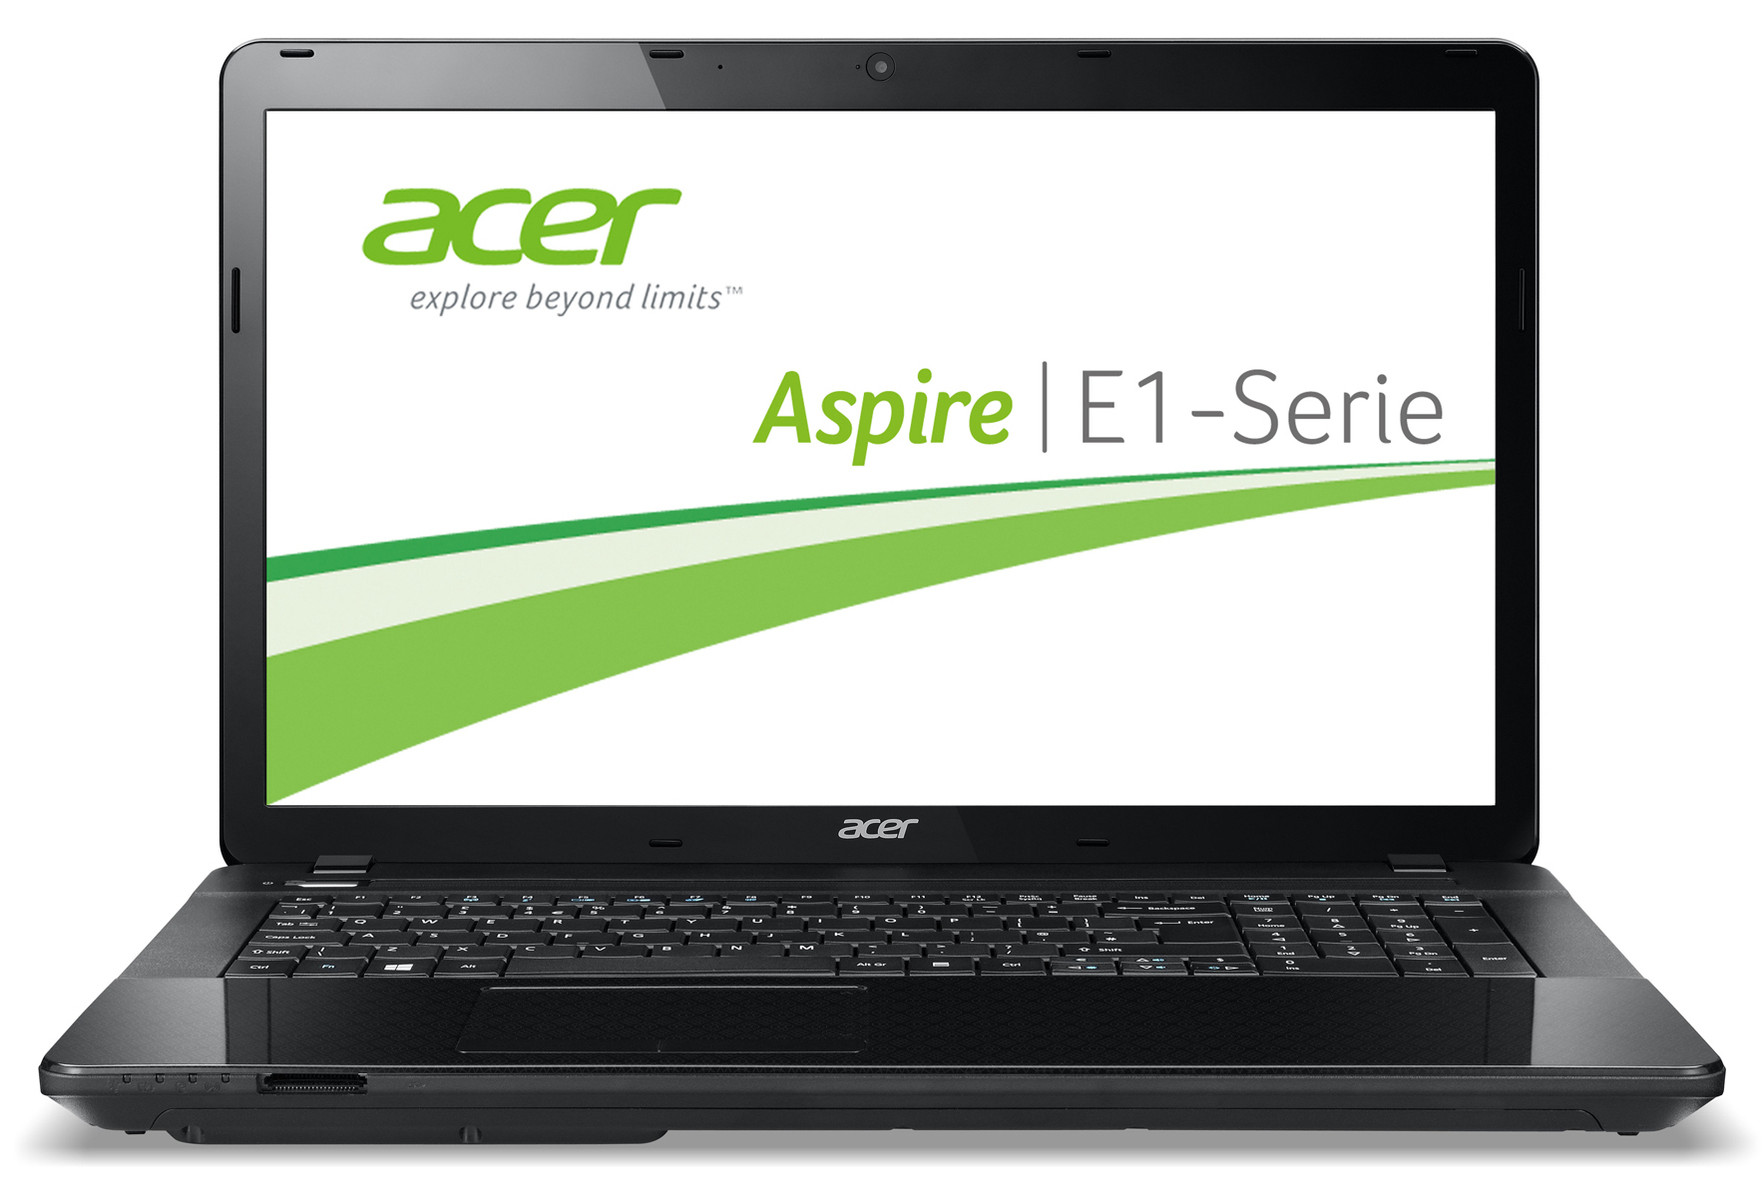 Acer Aspire E1-470P Atheros WLAN Windows Vista 32-BIT